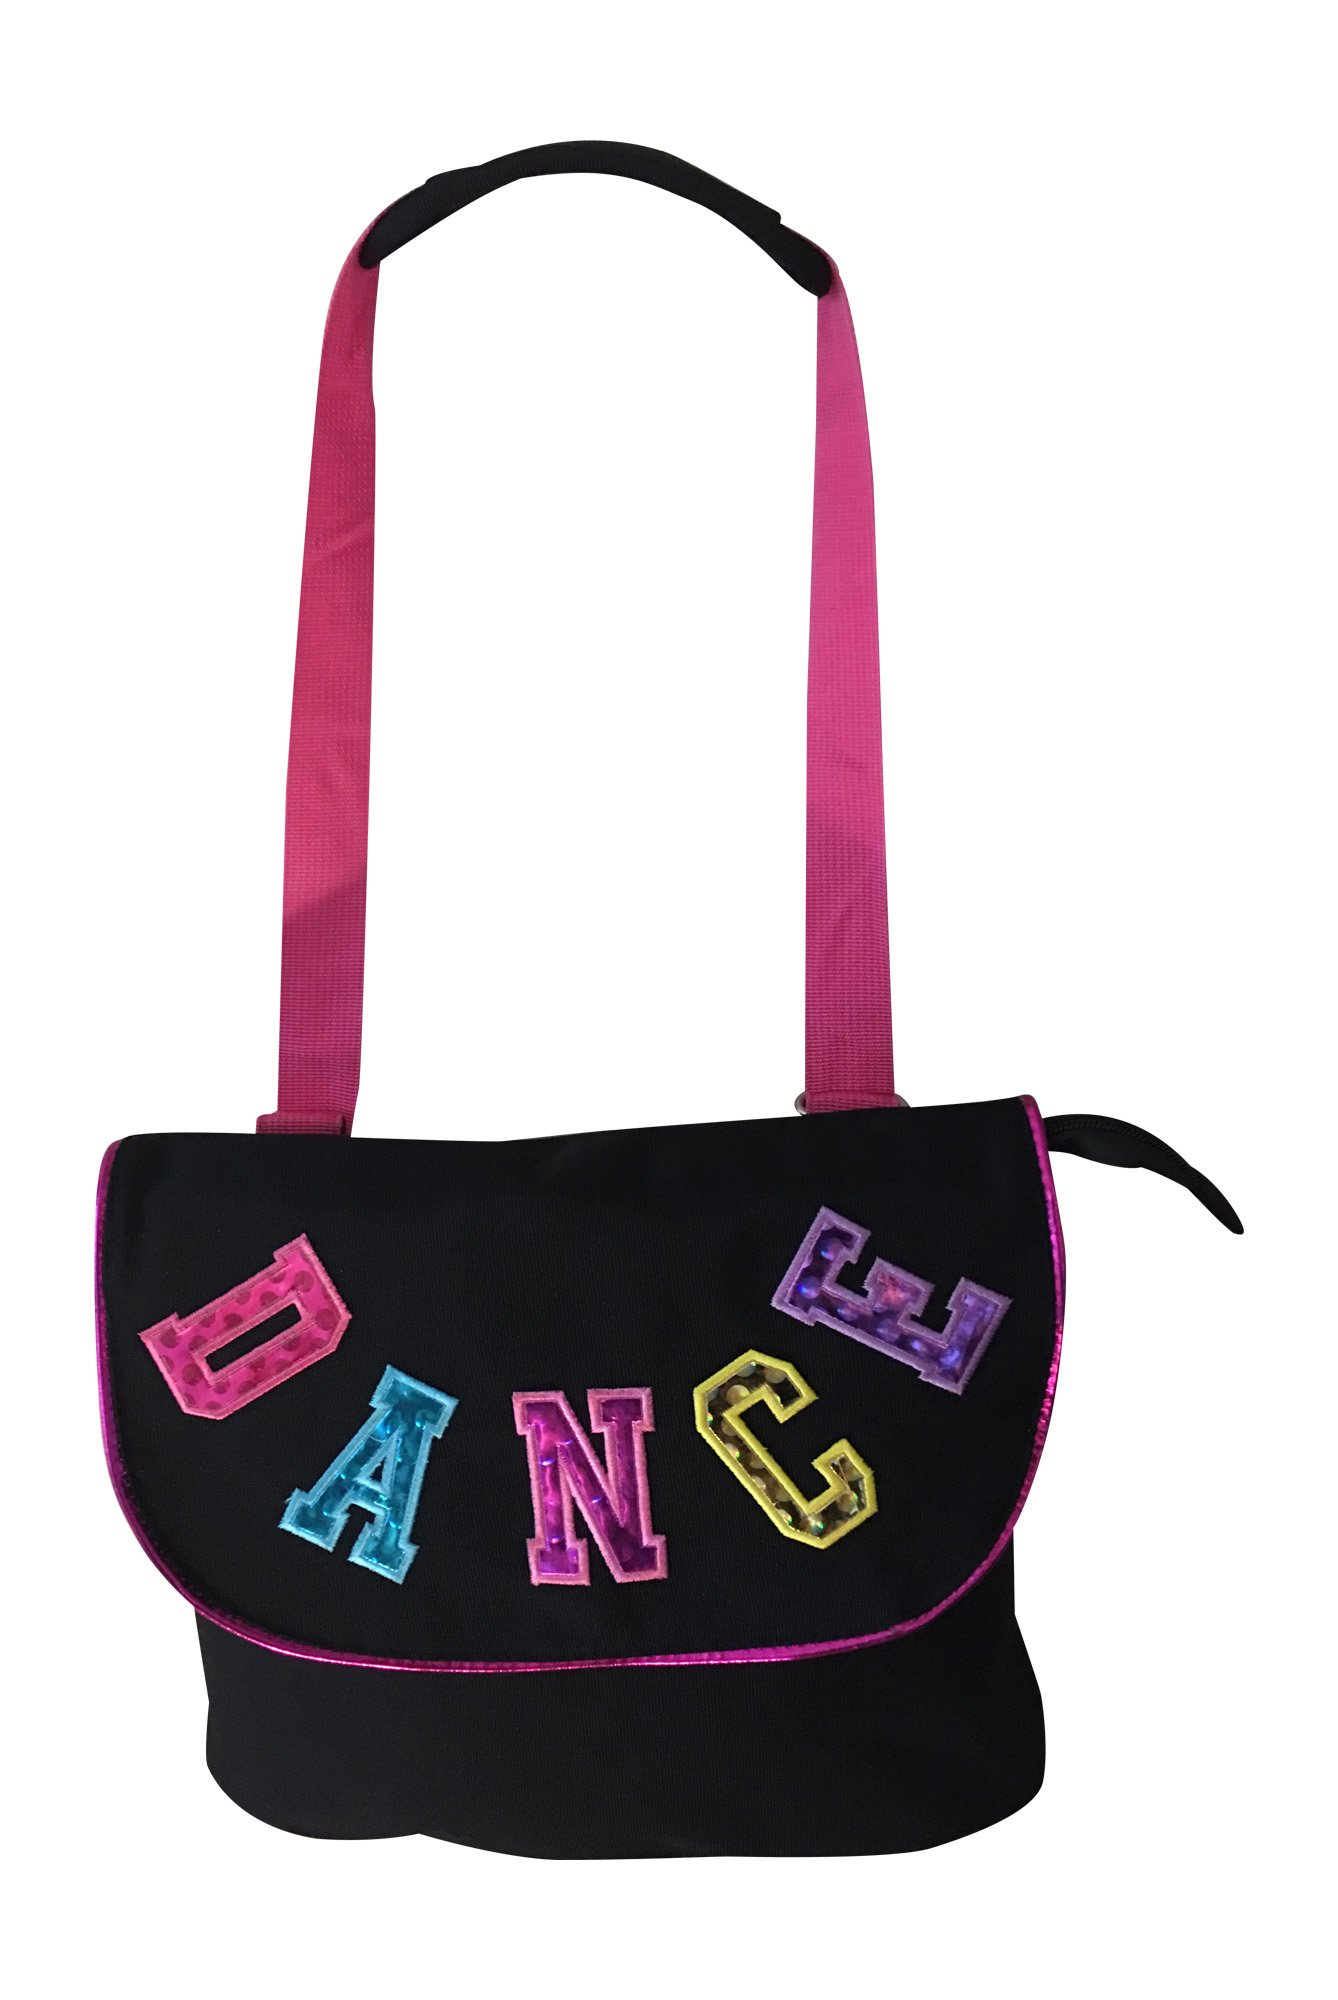 Dance Bag Two-in-One Backpack / Messenger Bag